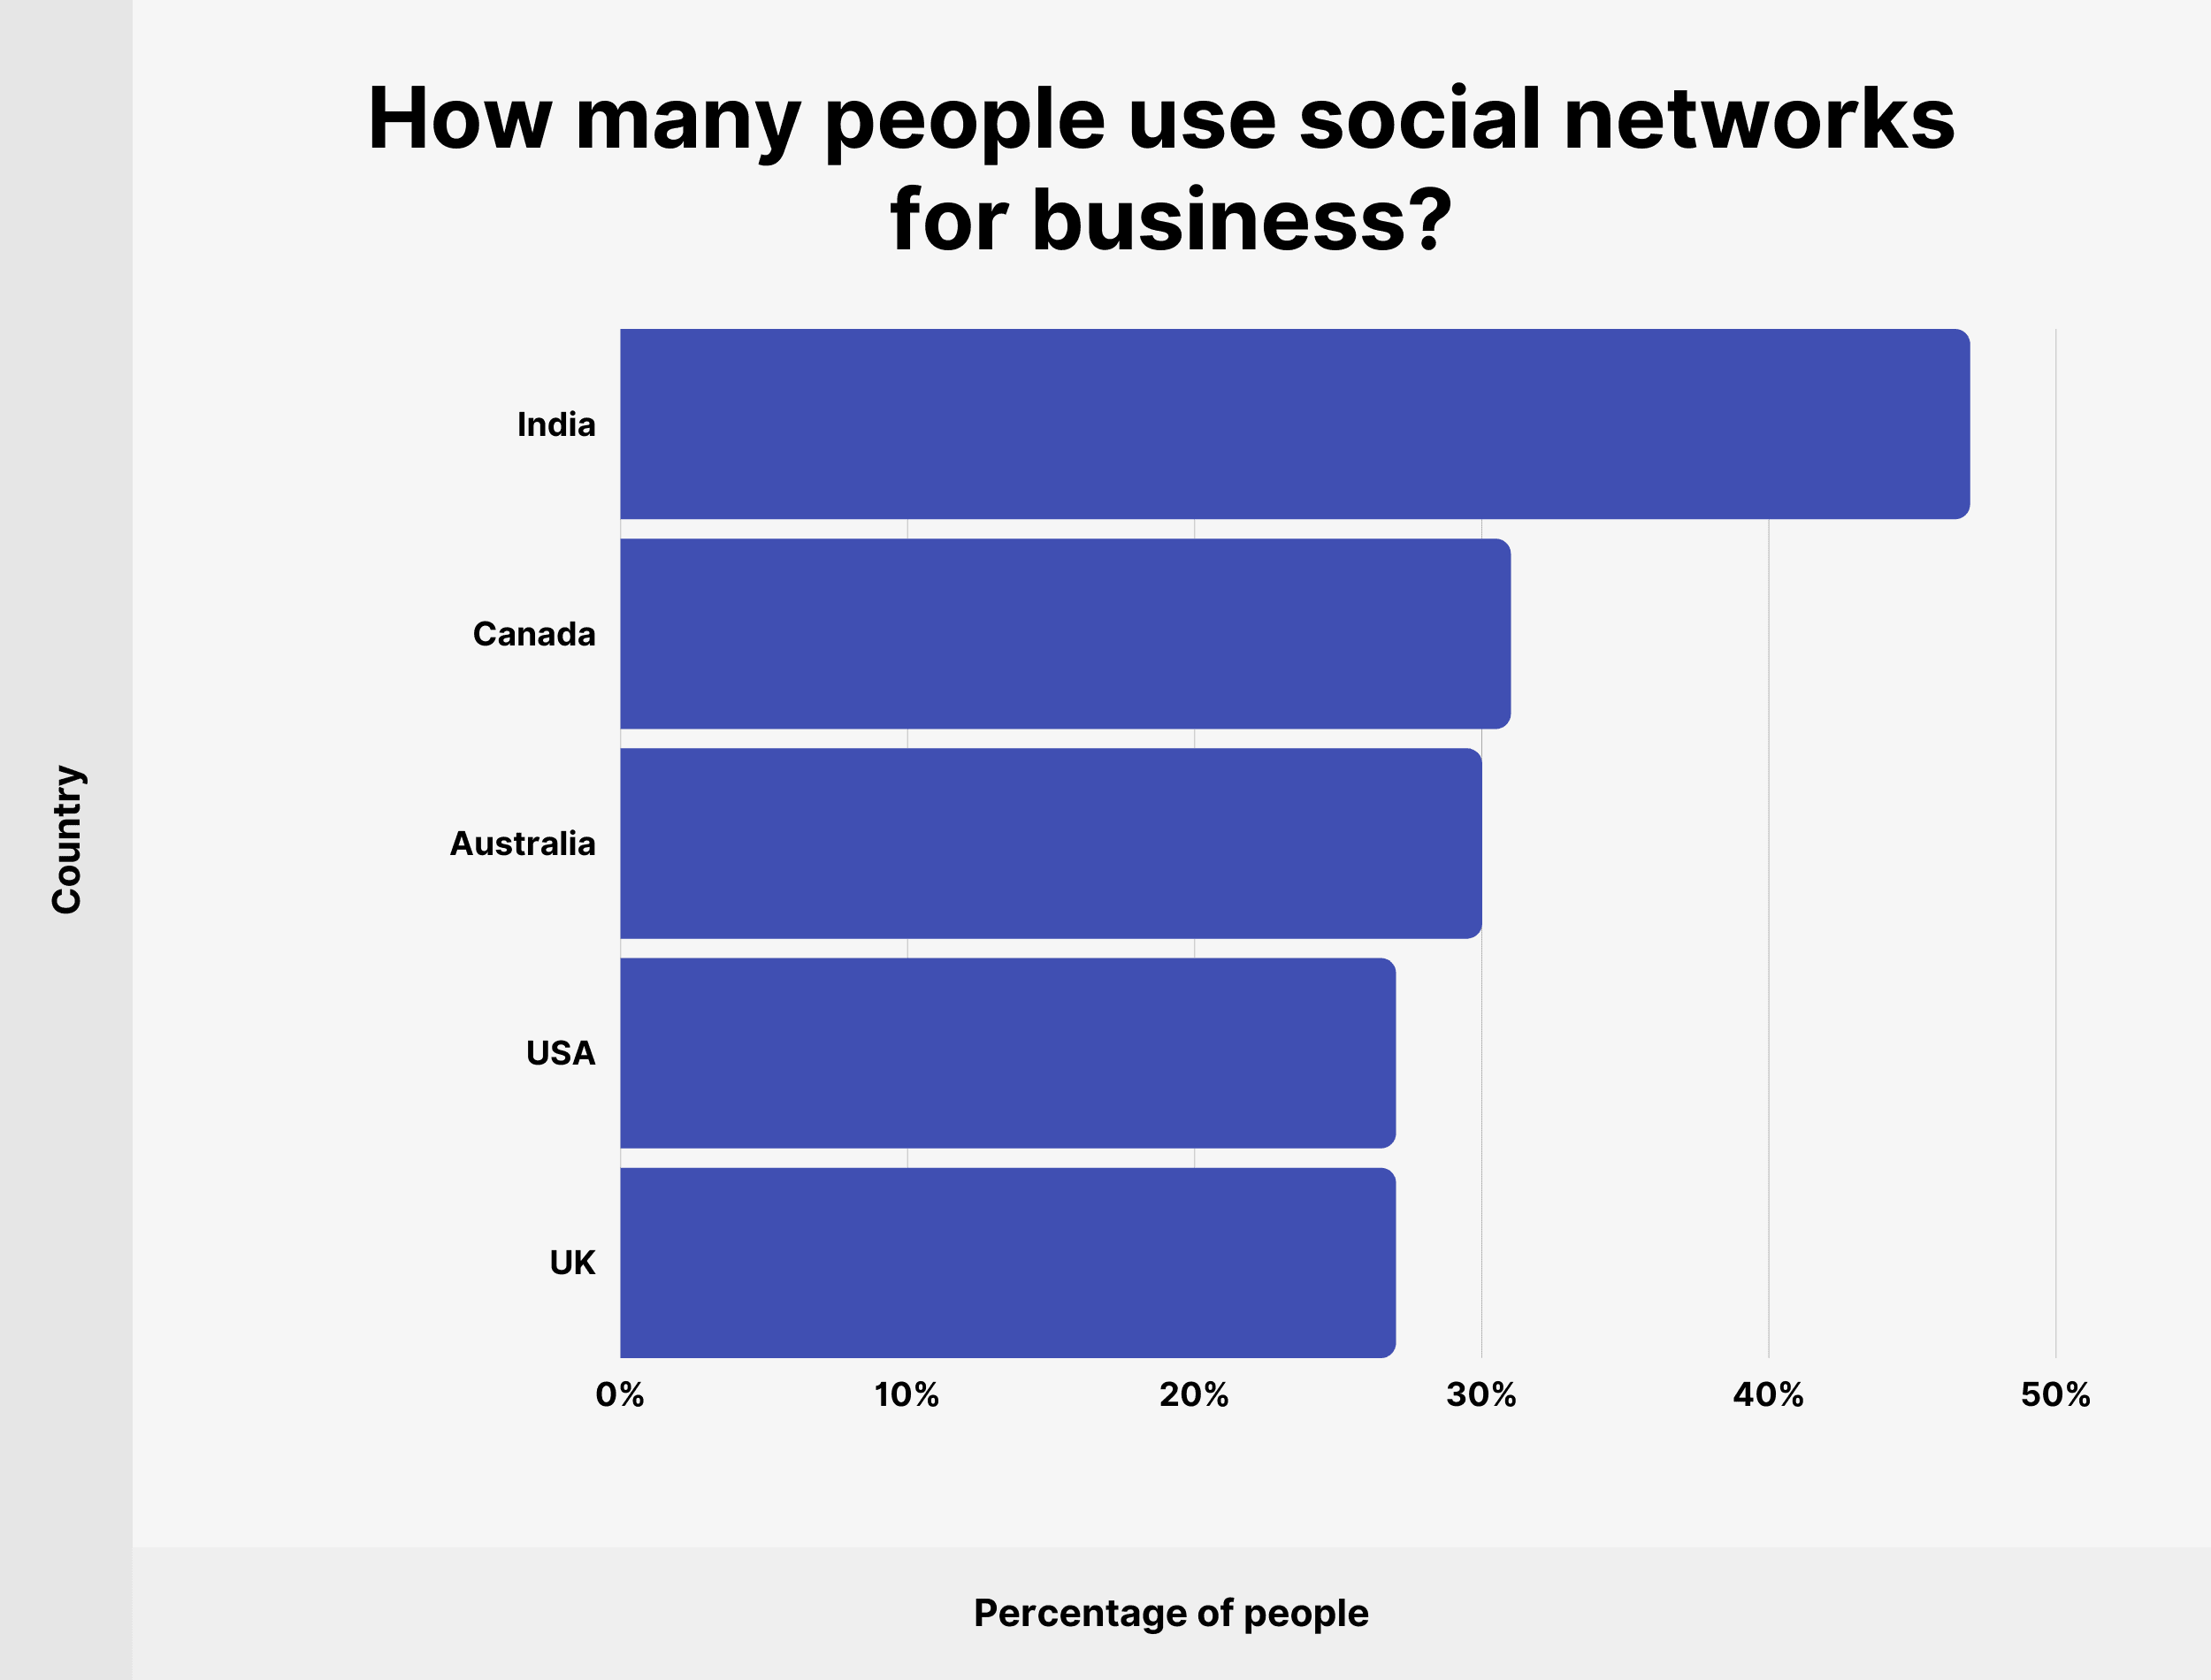 How many people use social networks for business?